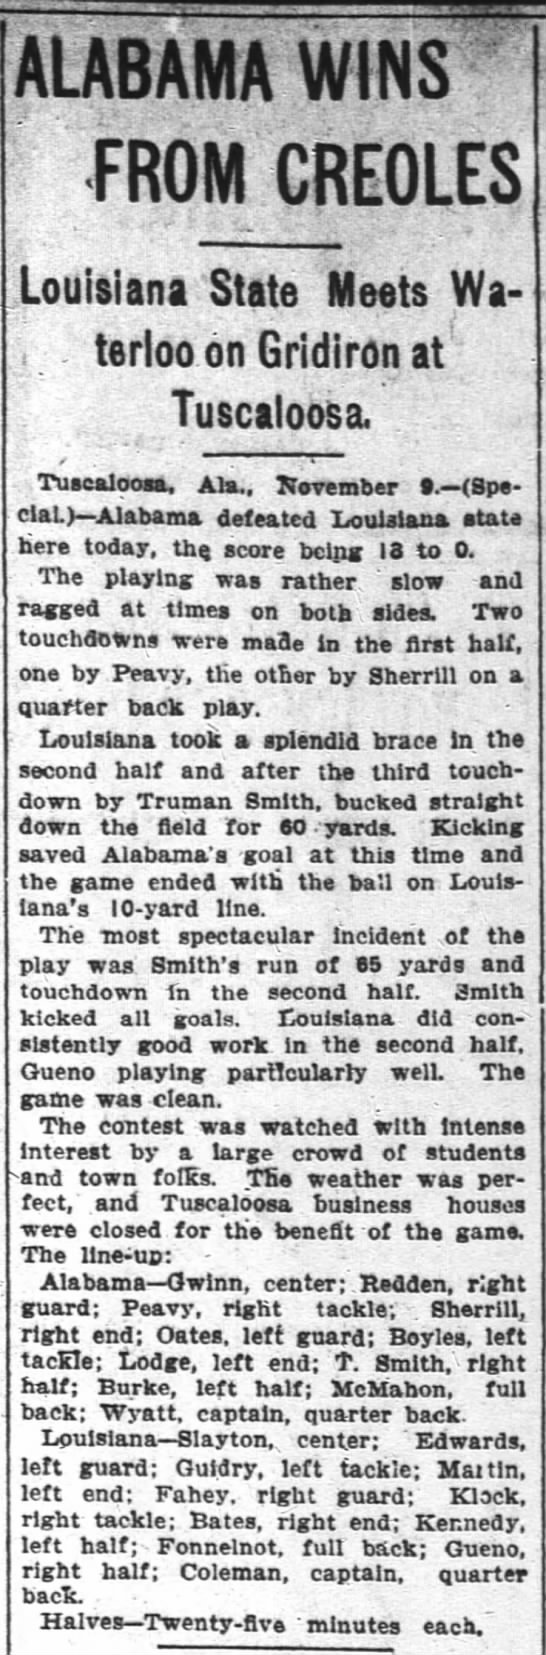 """Alabama wins from creoles,"" The Atlanta Constitution, November 10, 1903, p. 9 -"